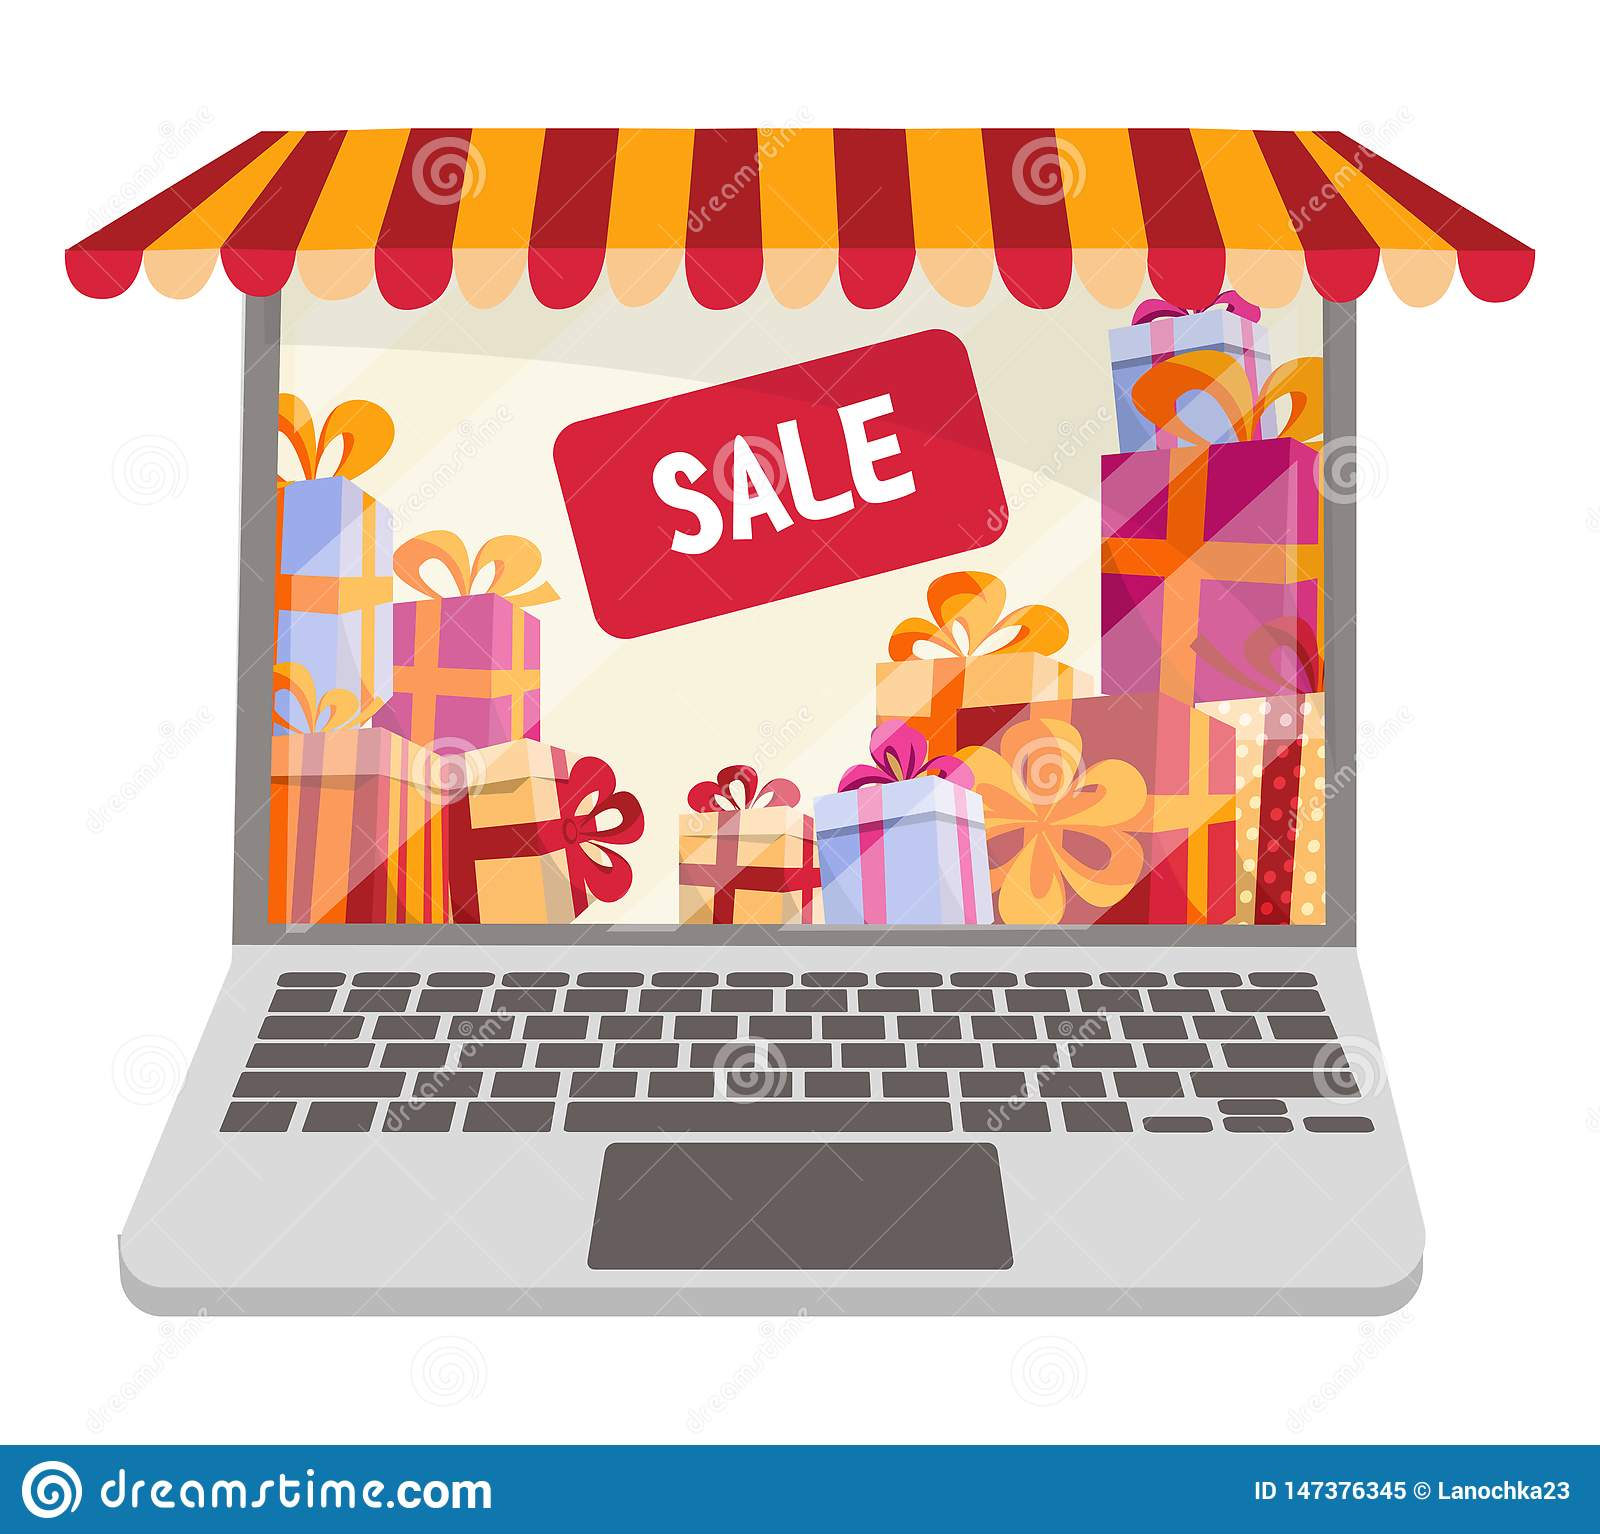 Flat cartoon vector llustration for online shopping and sales isolated on white background. Laptop decorated as shop window with